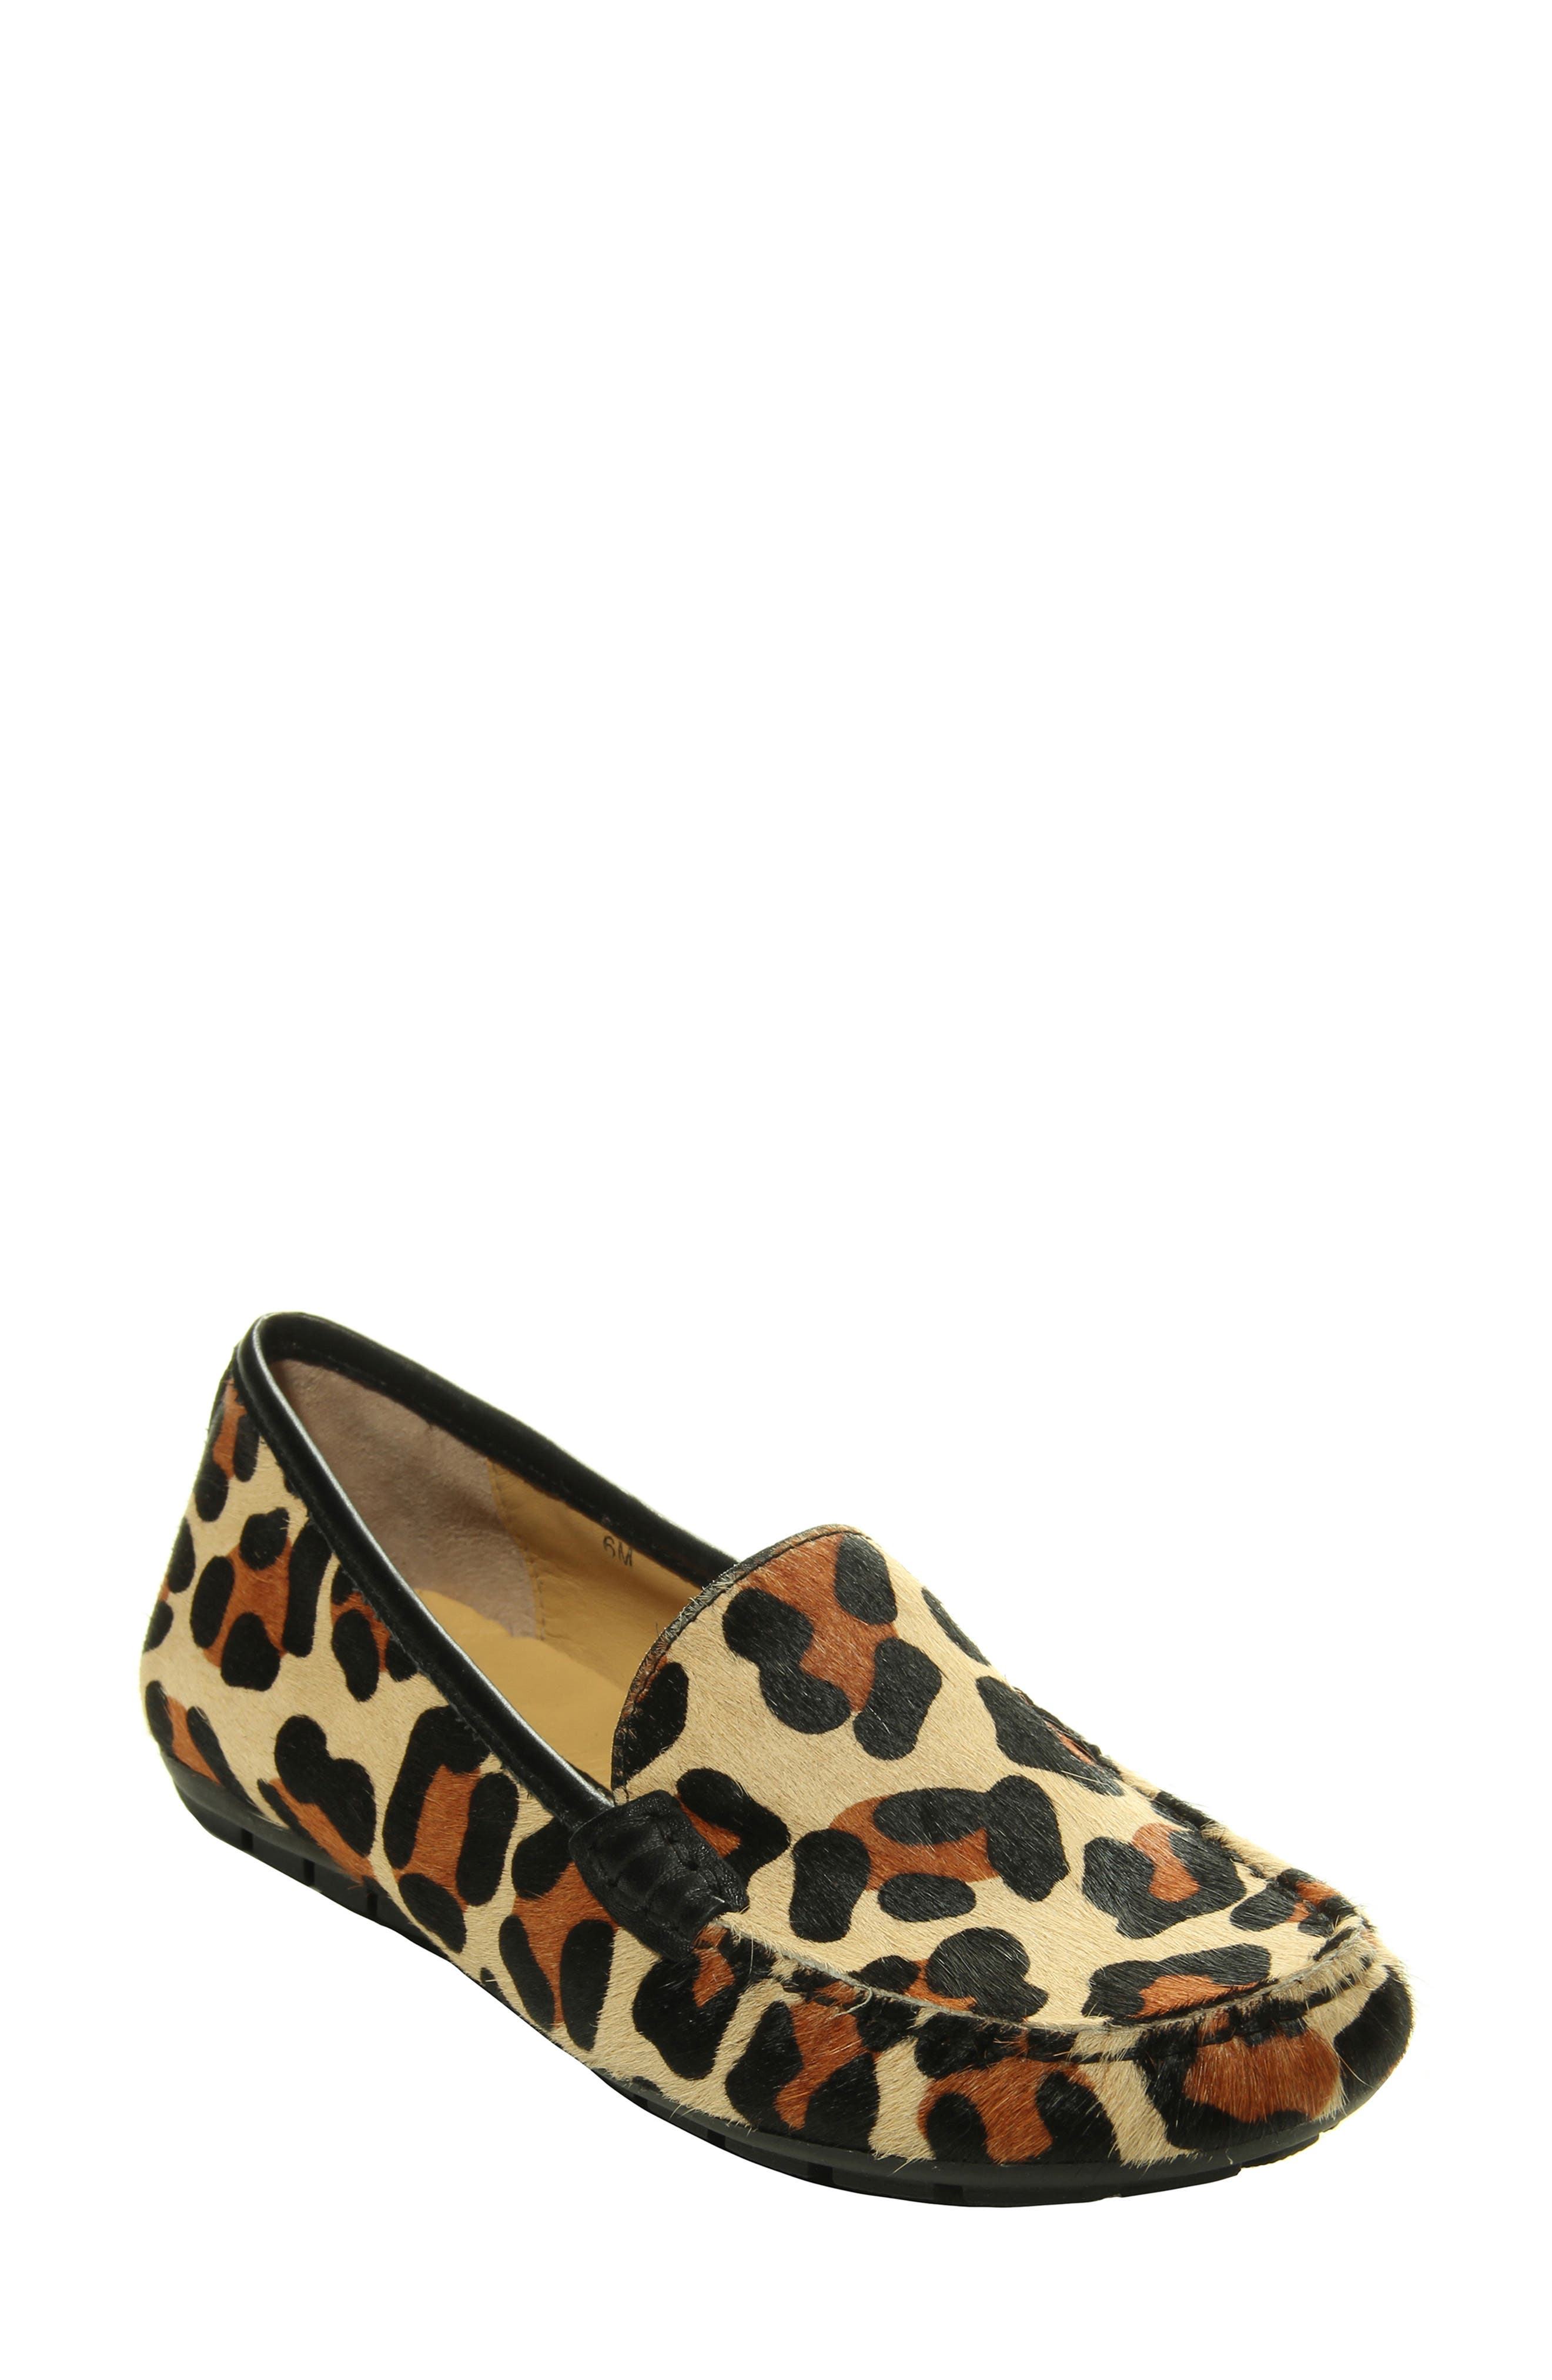 Bold patterns and genuine calf hair elevate a sophisticated loafer with a moc-stitched toe and well-cushioned footbed. Style Name: Vaneli Albion Genuine Calf Hair Loafer (Women). Style Number: 6111238. Available in stores.